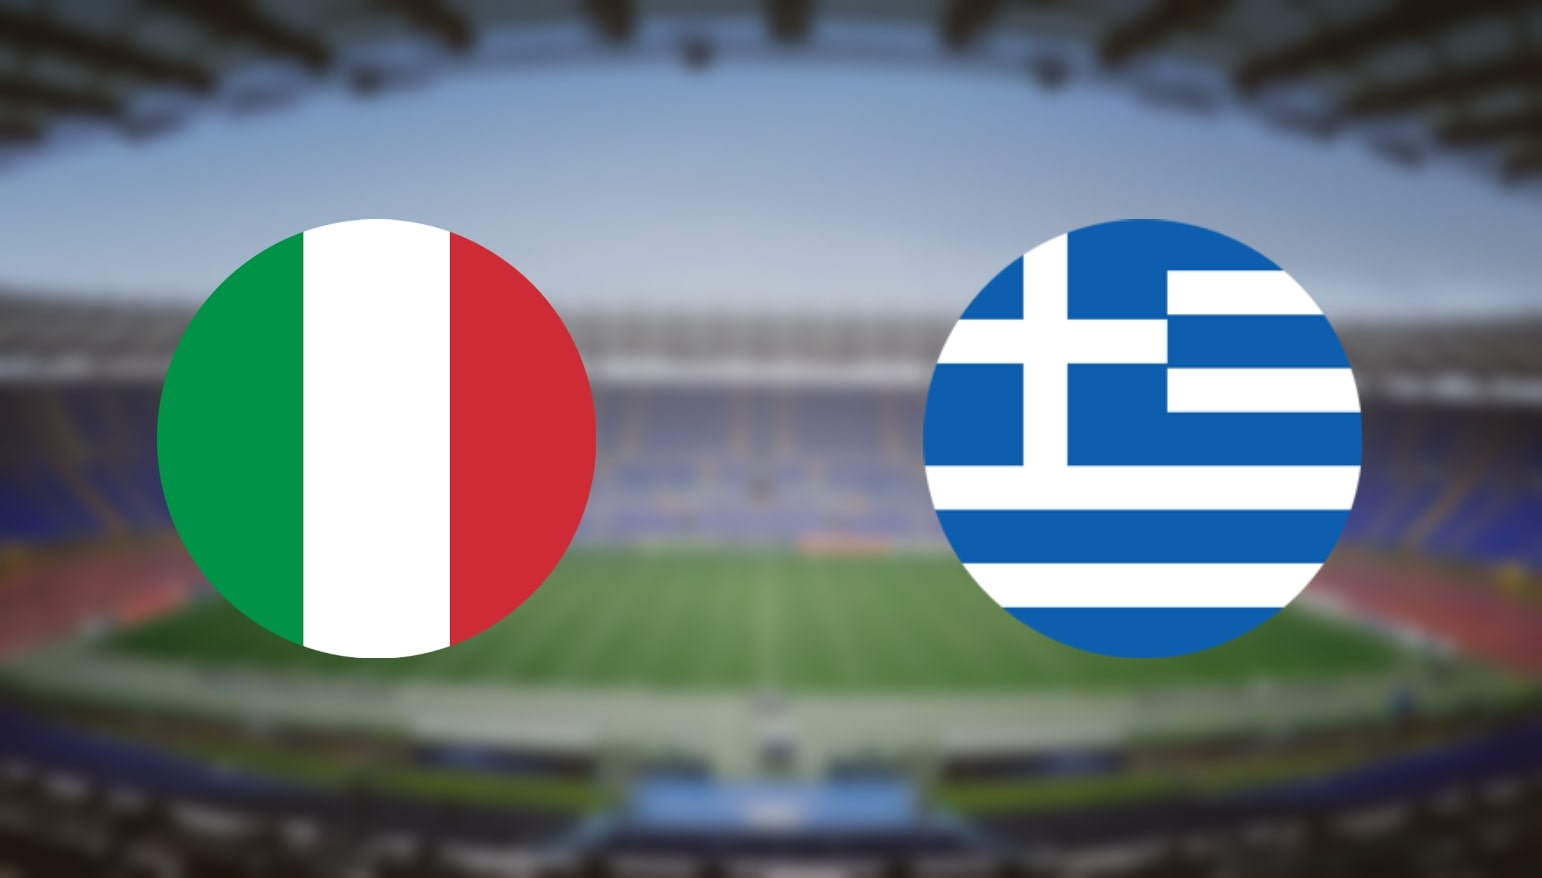 Italy vs Greece Prediction: EURO 2020 Qualifying Match on 12.10.2019